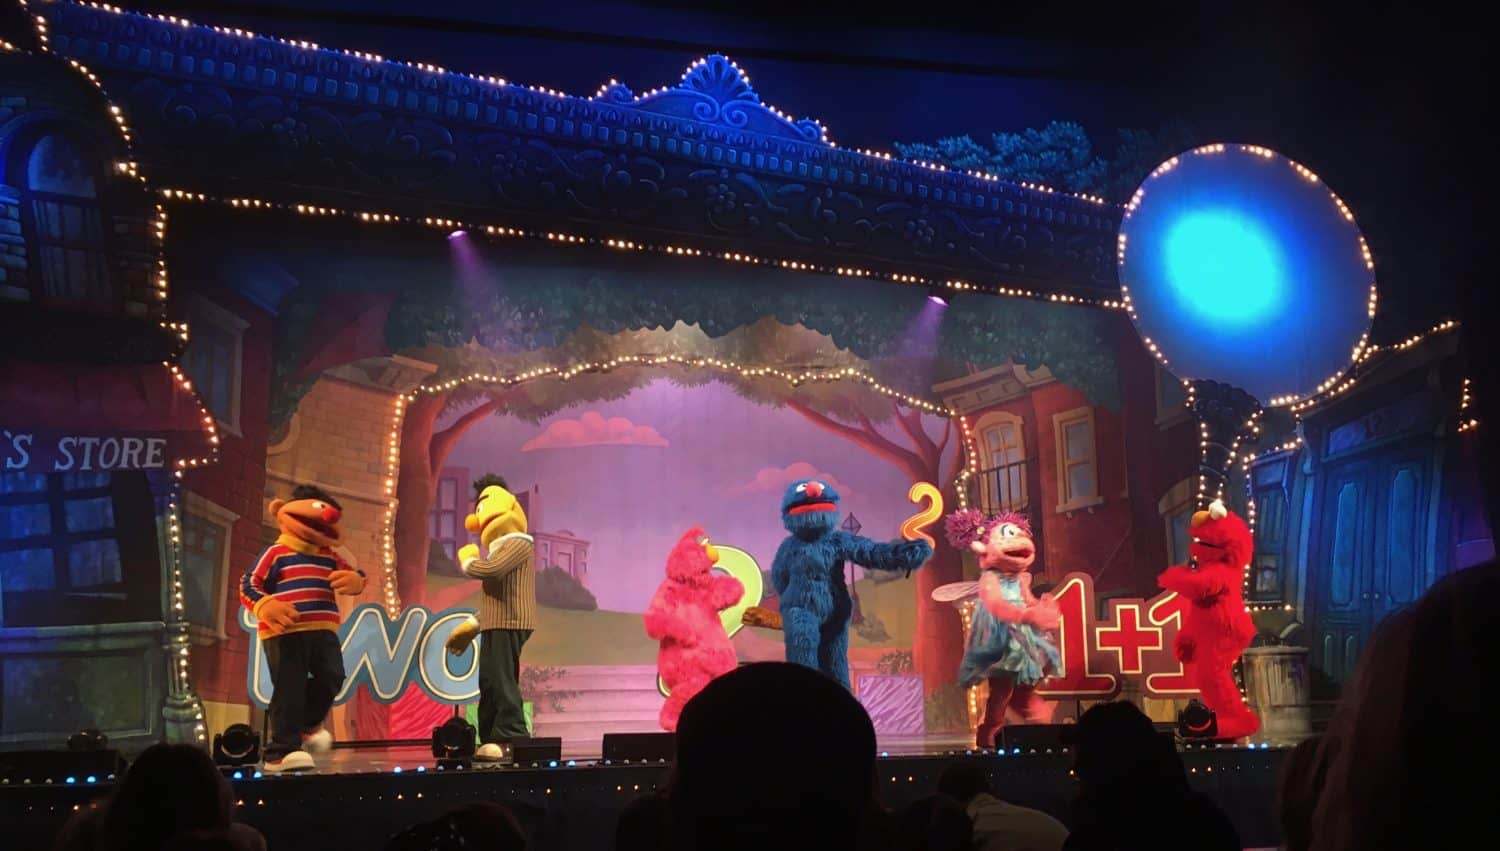 Sesame Street Live - The Number 2